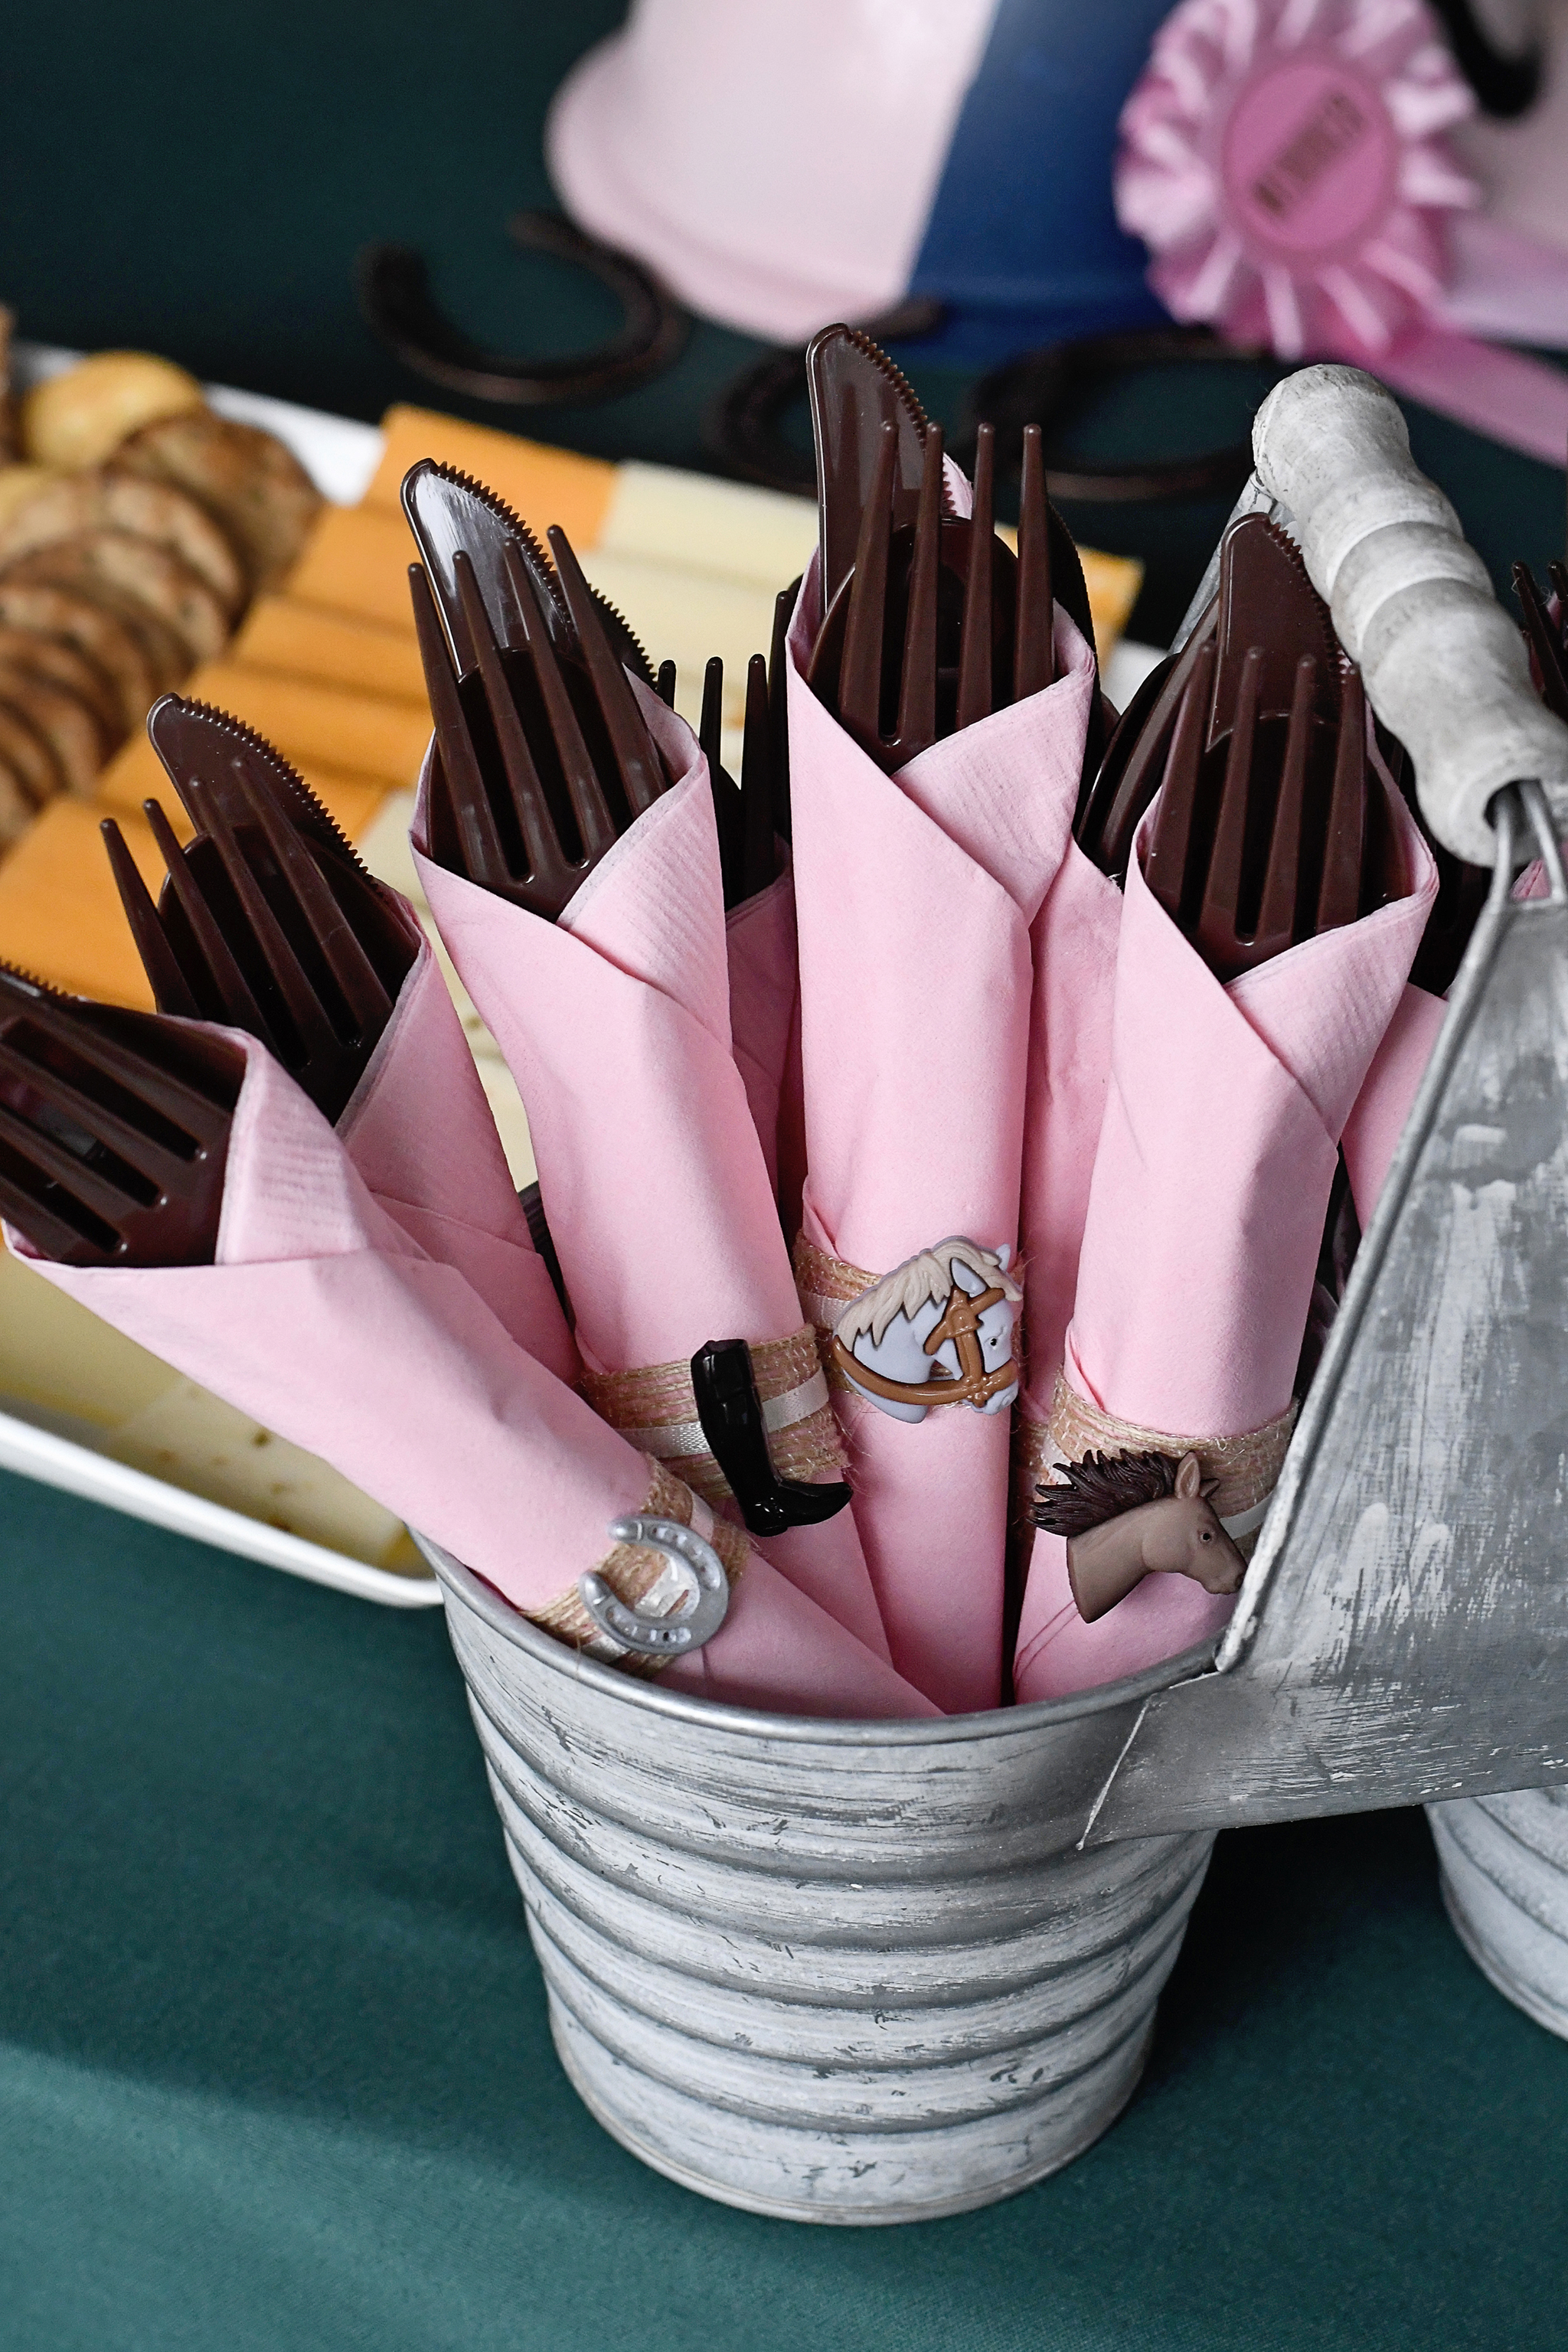 Horse-themed silverware bundles